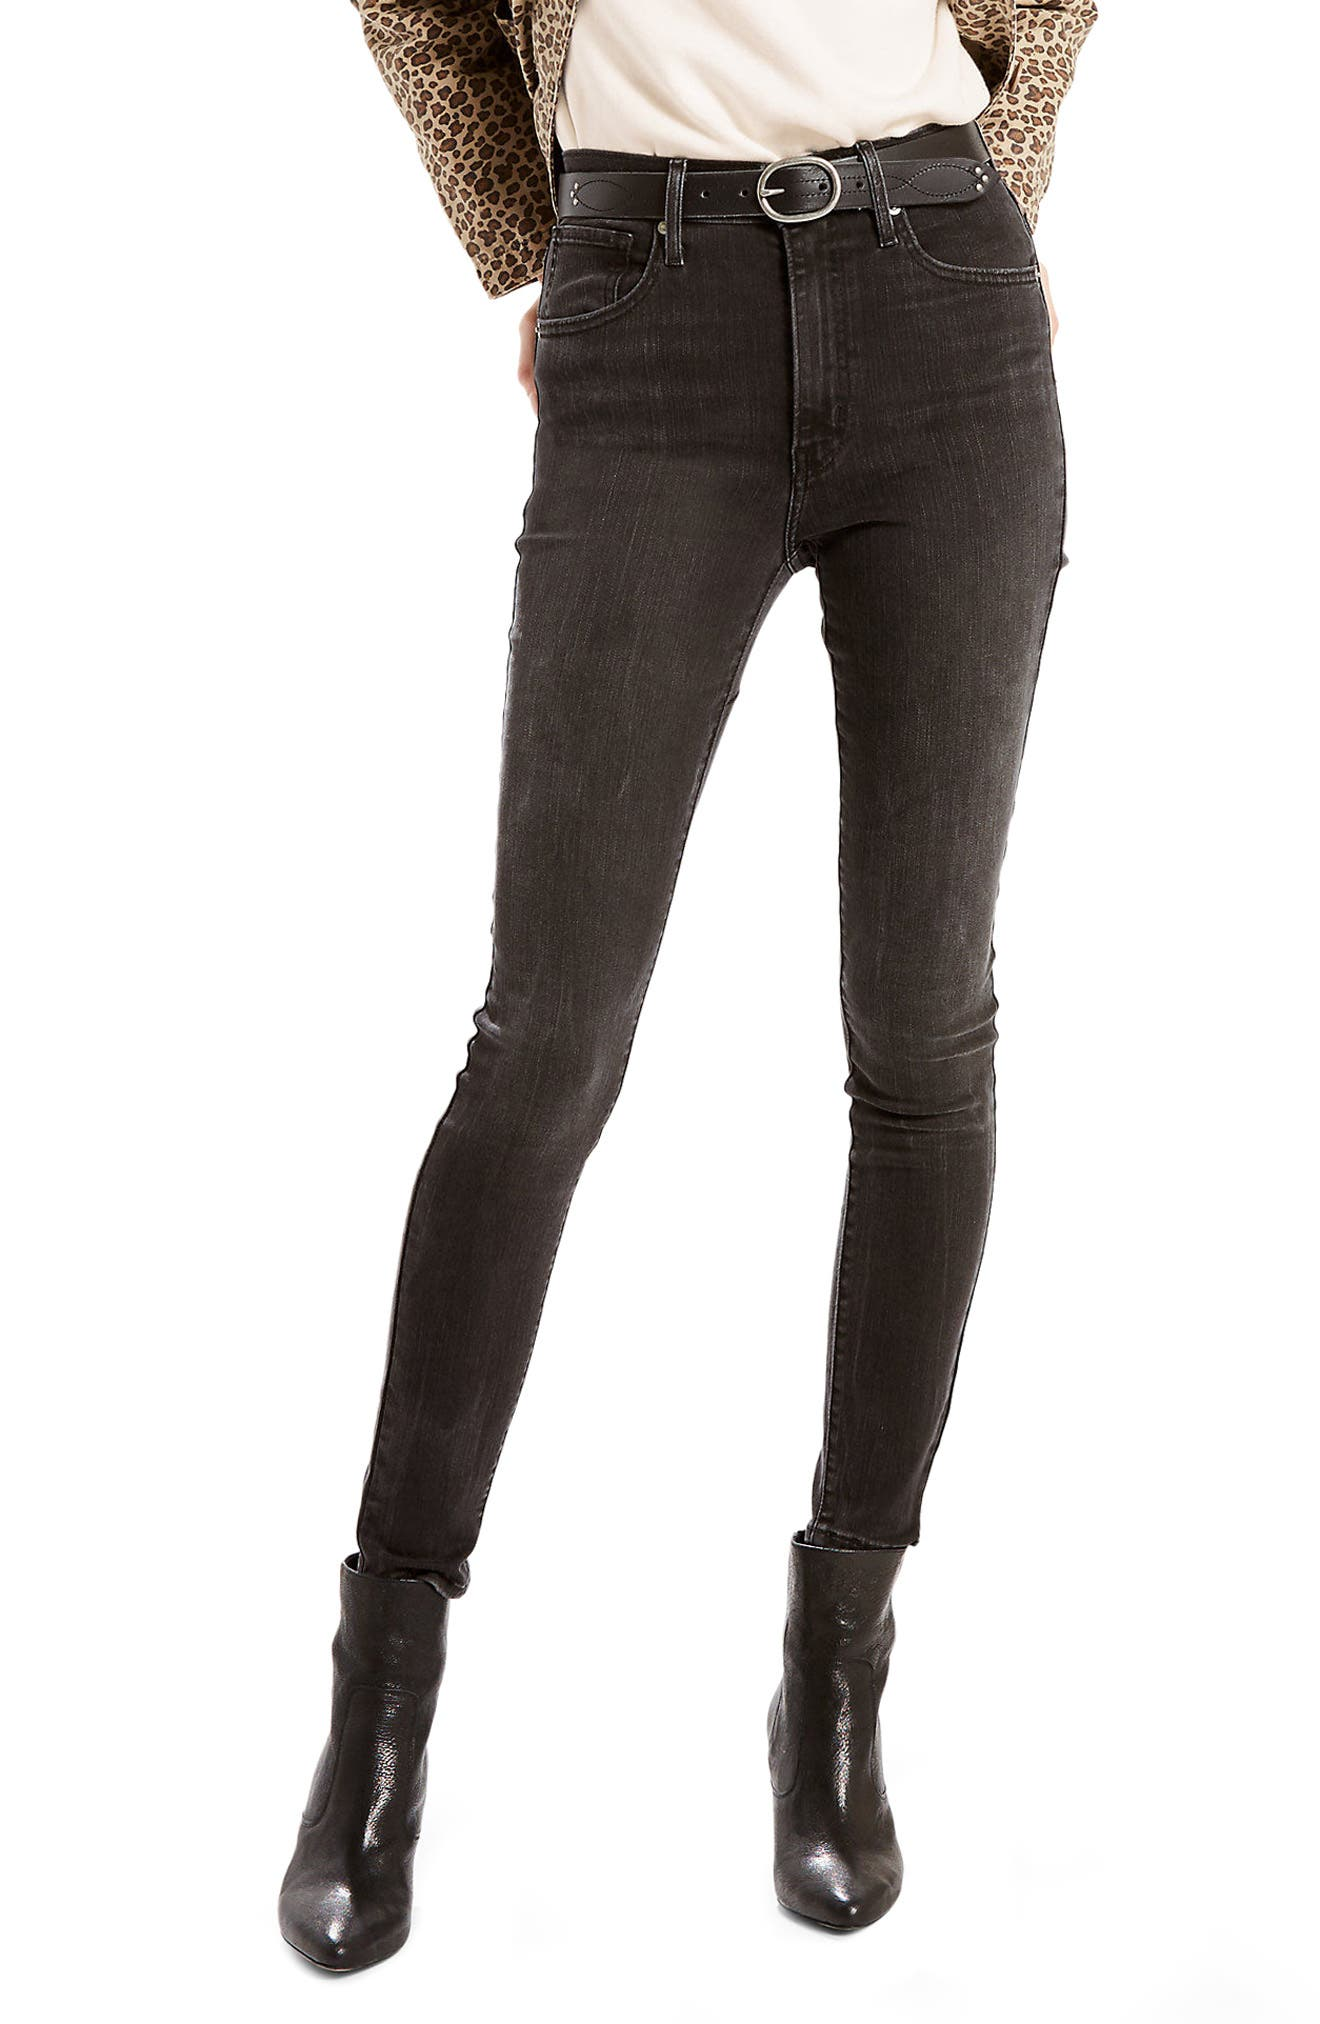 Mile High High Waist Super Skinny Jeans,                         Main,                         color, 020